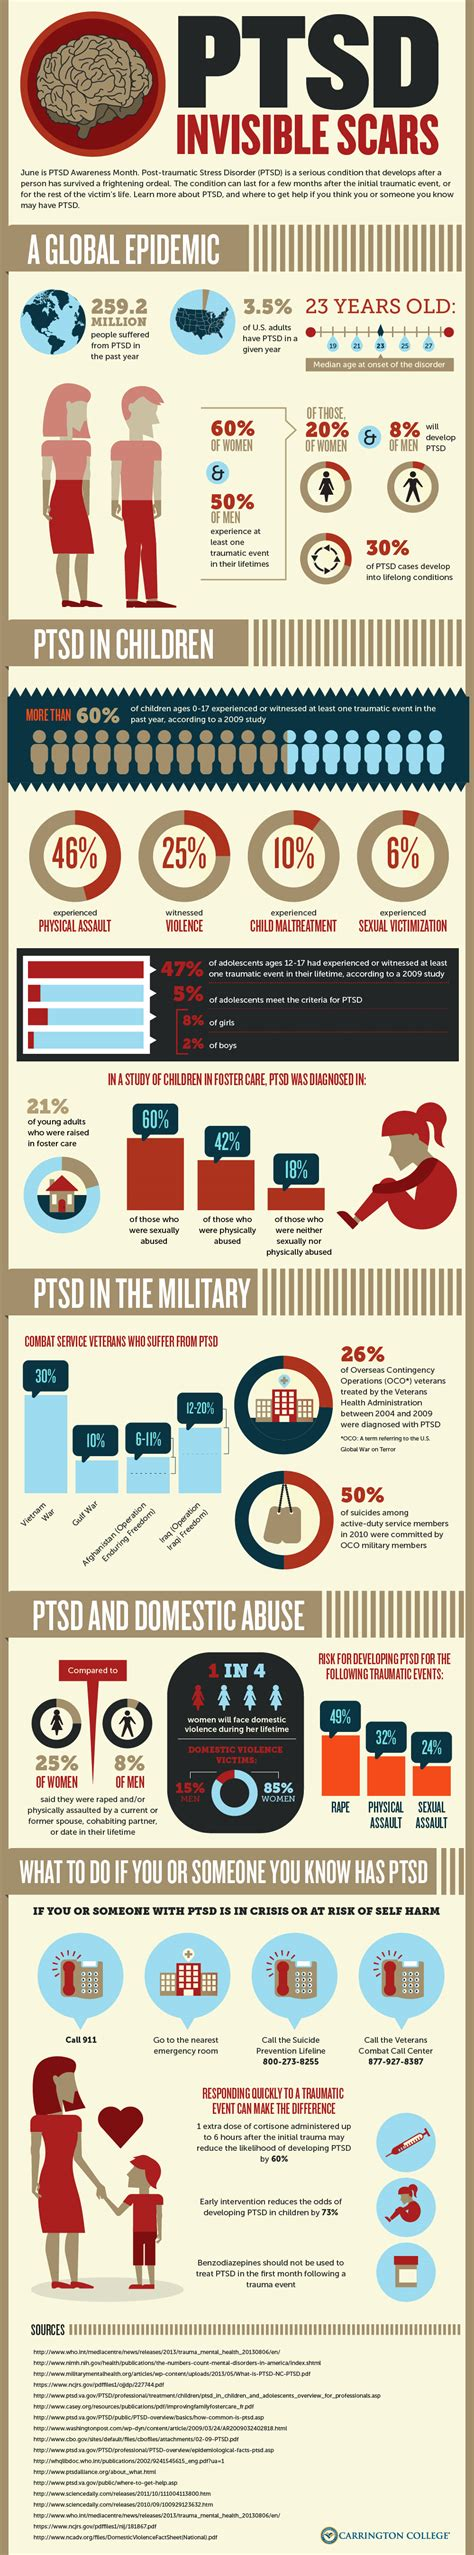 Post Traumatic Stress Disorder (ptsd)  Invisible Scars